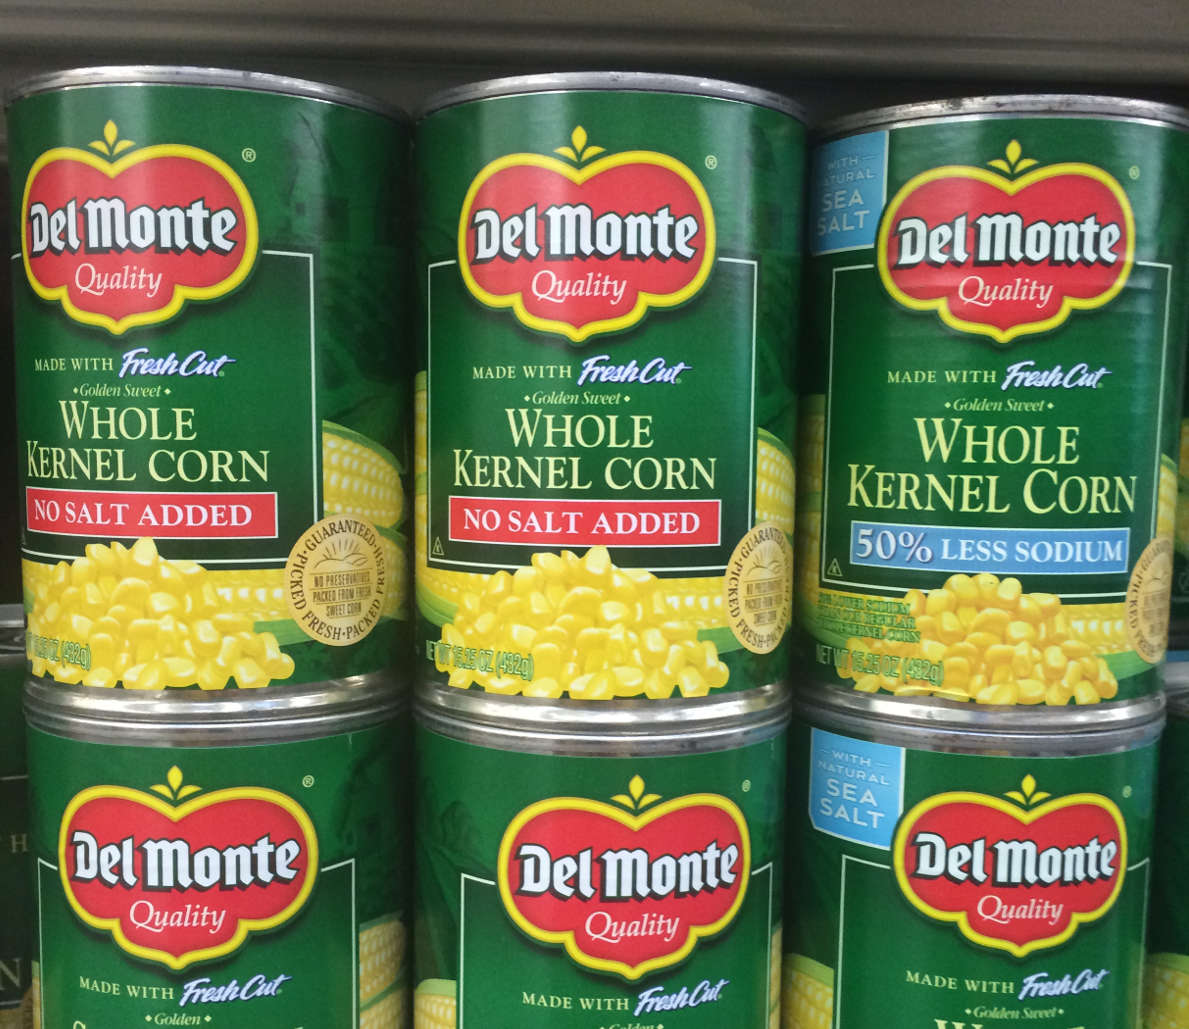 Del Monte's sweetcorn products